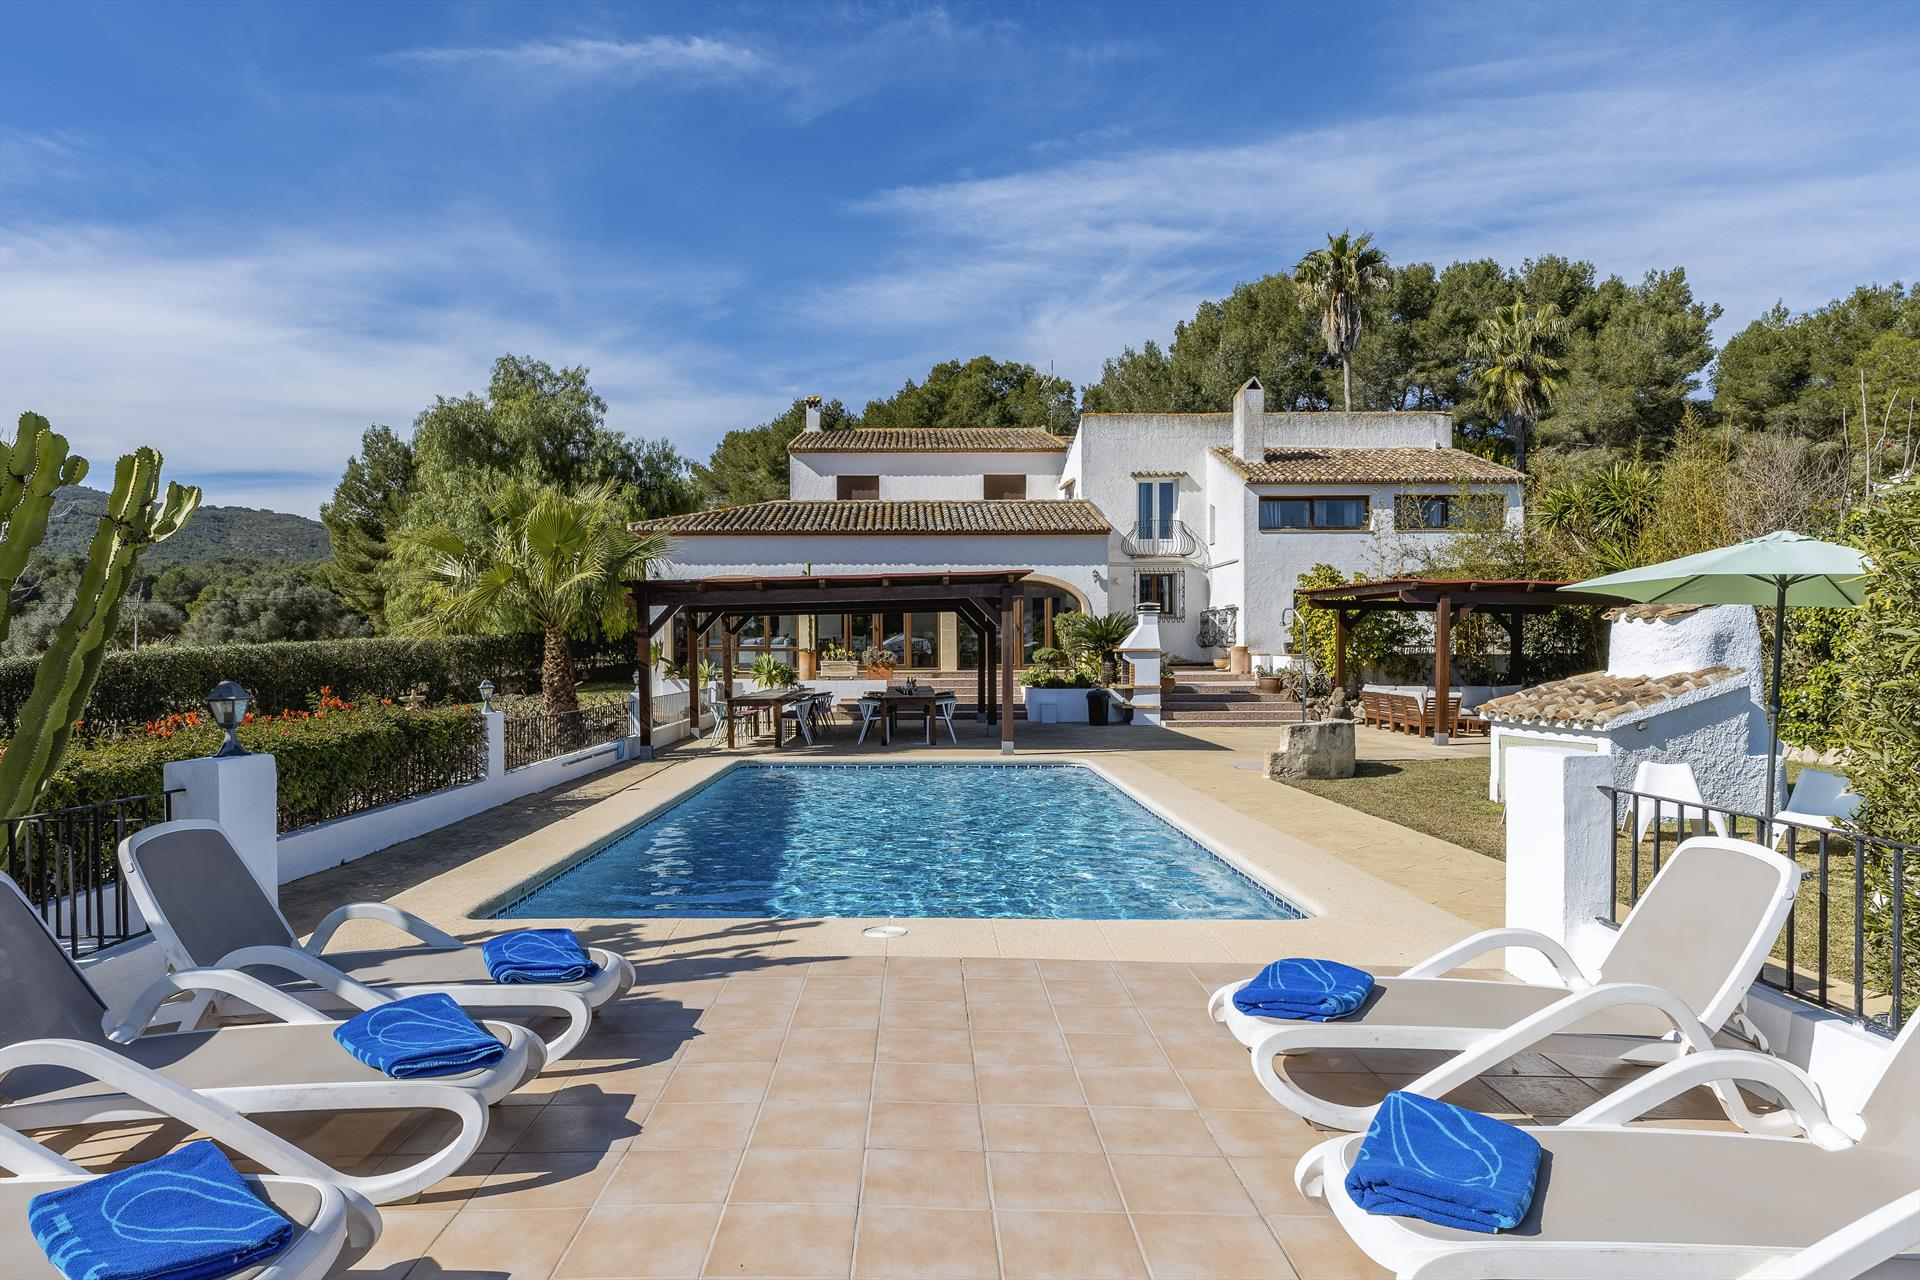 Casa Rosalia 26, Holiday villa at the Costa Blanca for maximum 25 people.Beautifully renovated country house in Spain on two floors,.....